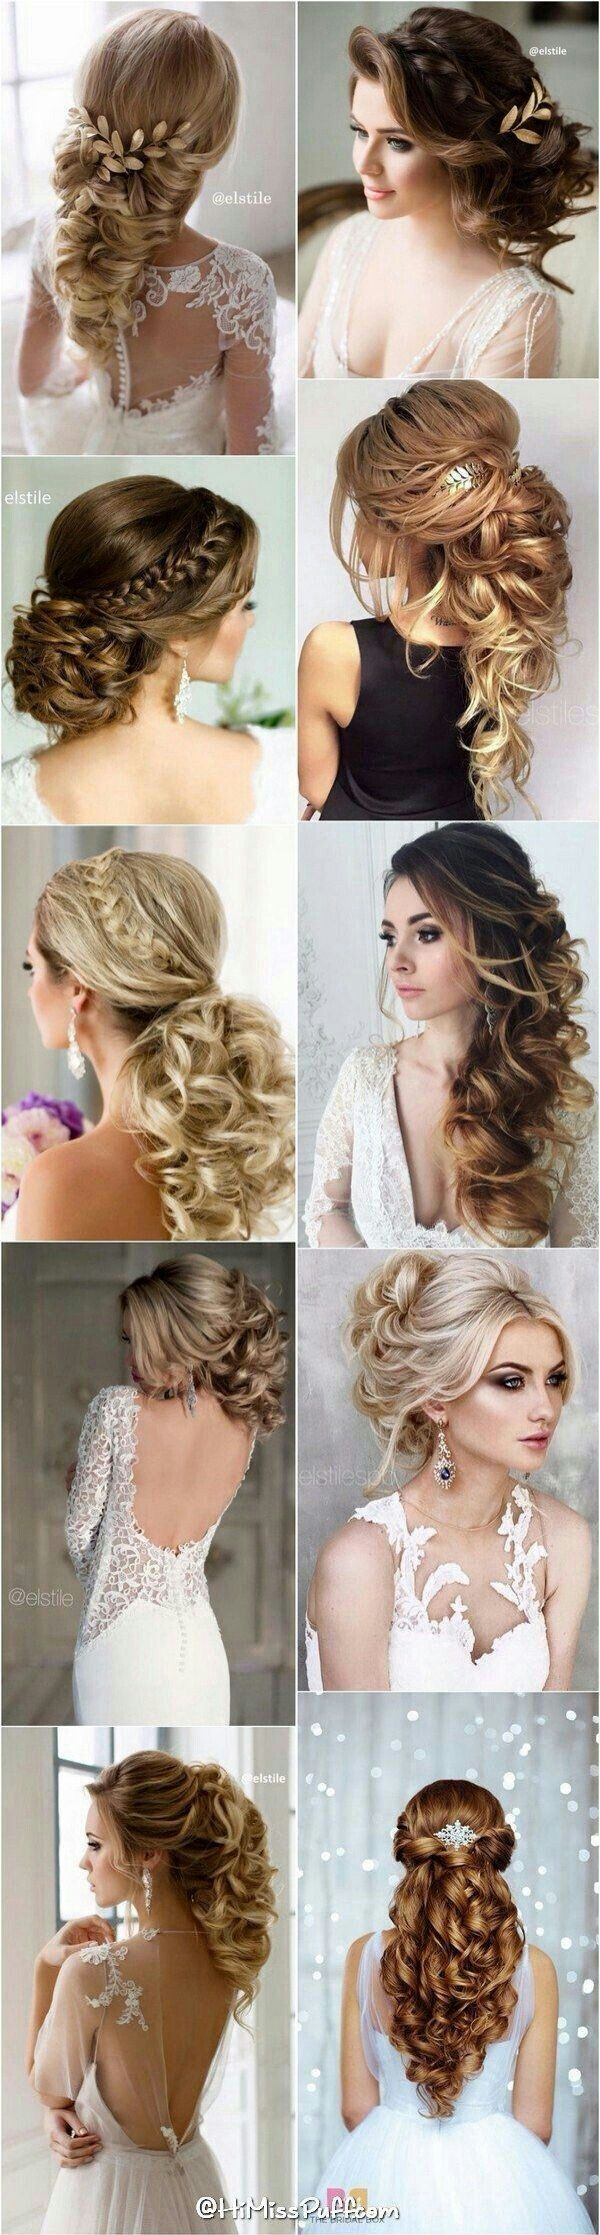 28 best Wedding  images on Pinterest   Wedding ideas  Decor wedding     nice 200 Bridal Wedding Hairstyles for Long Hair That Will Inspire